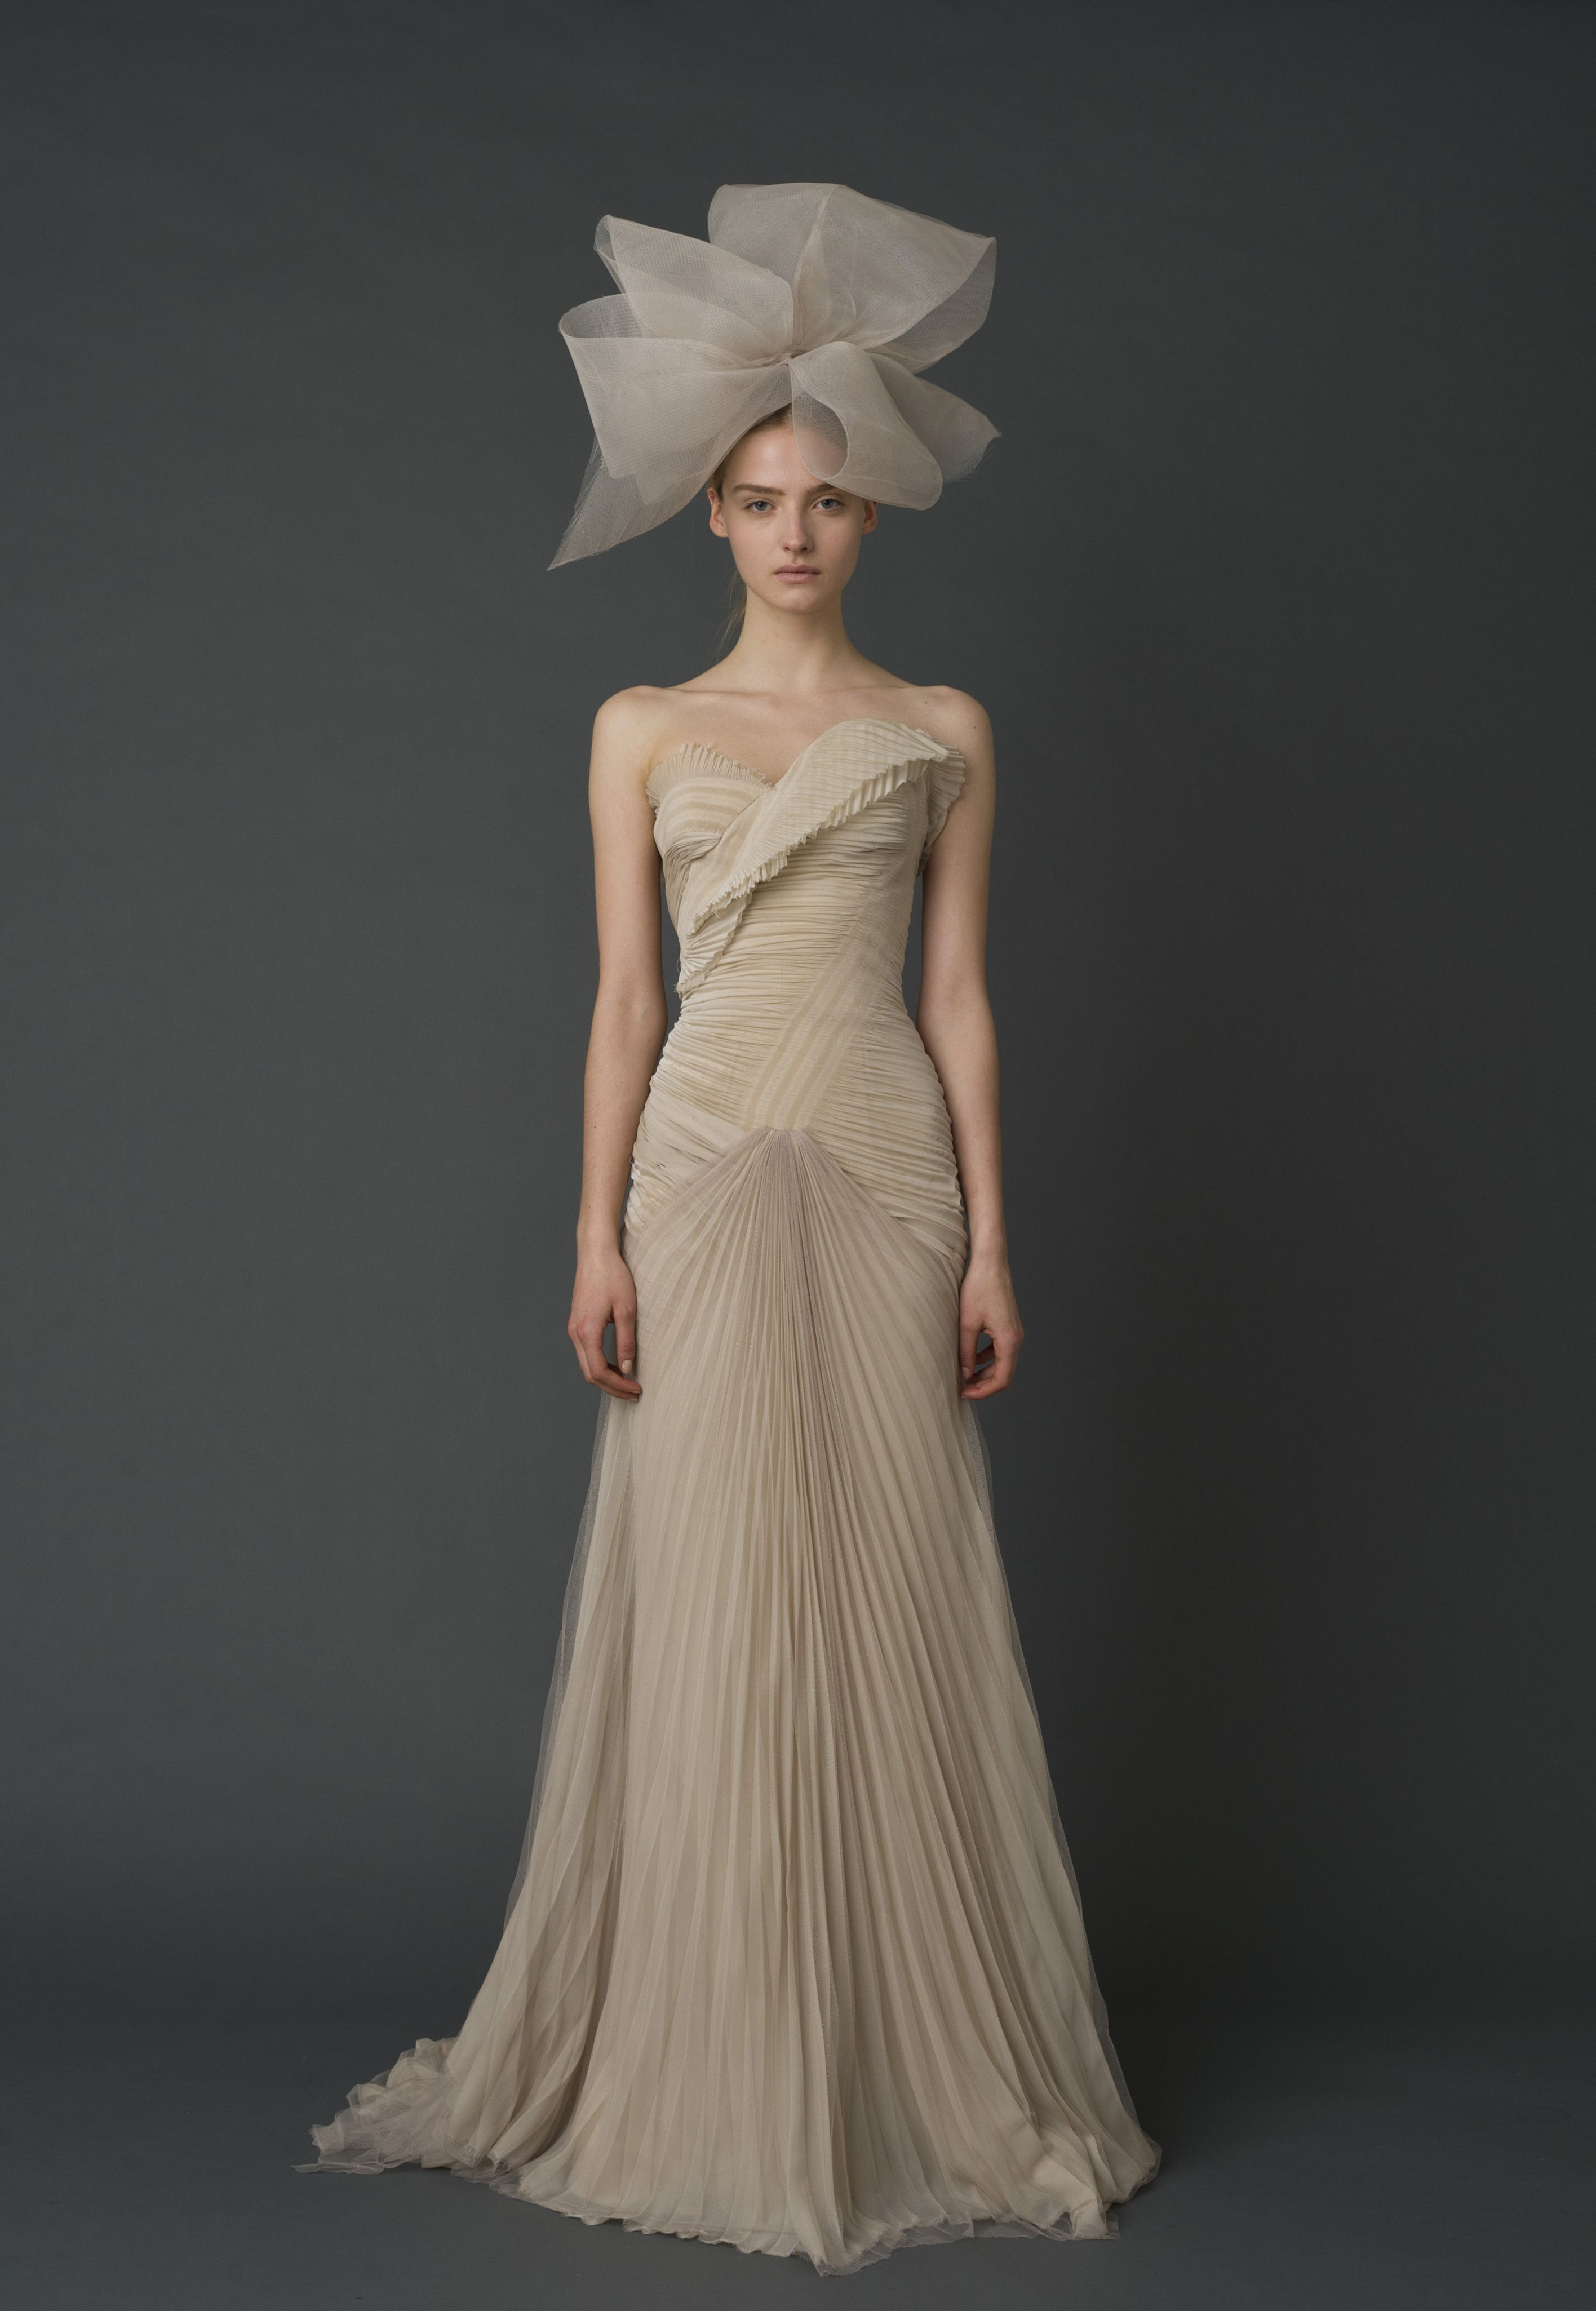 Vera Wang Nude Dressummm Minus The Bow And Not For